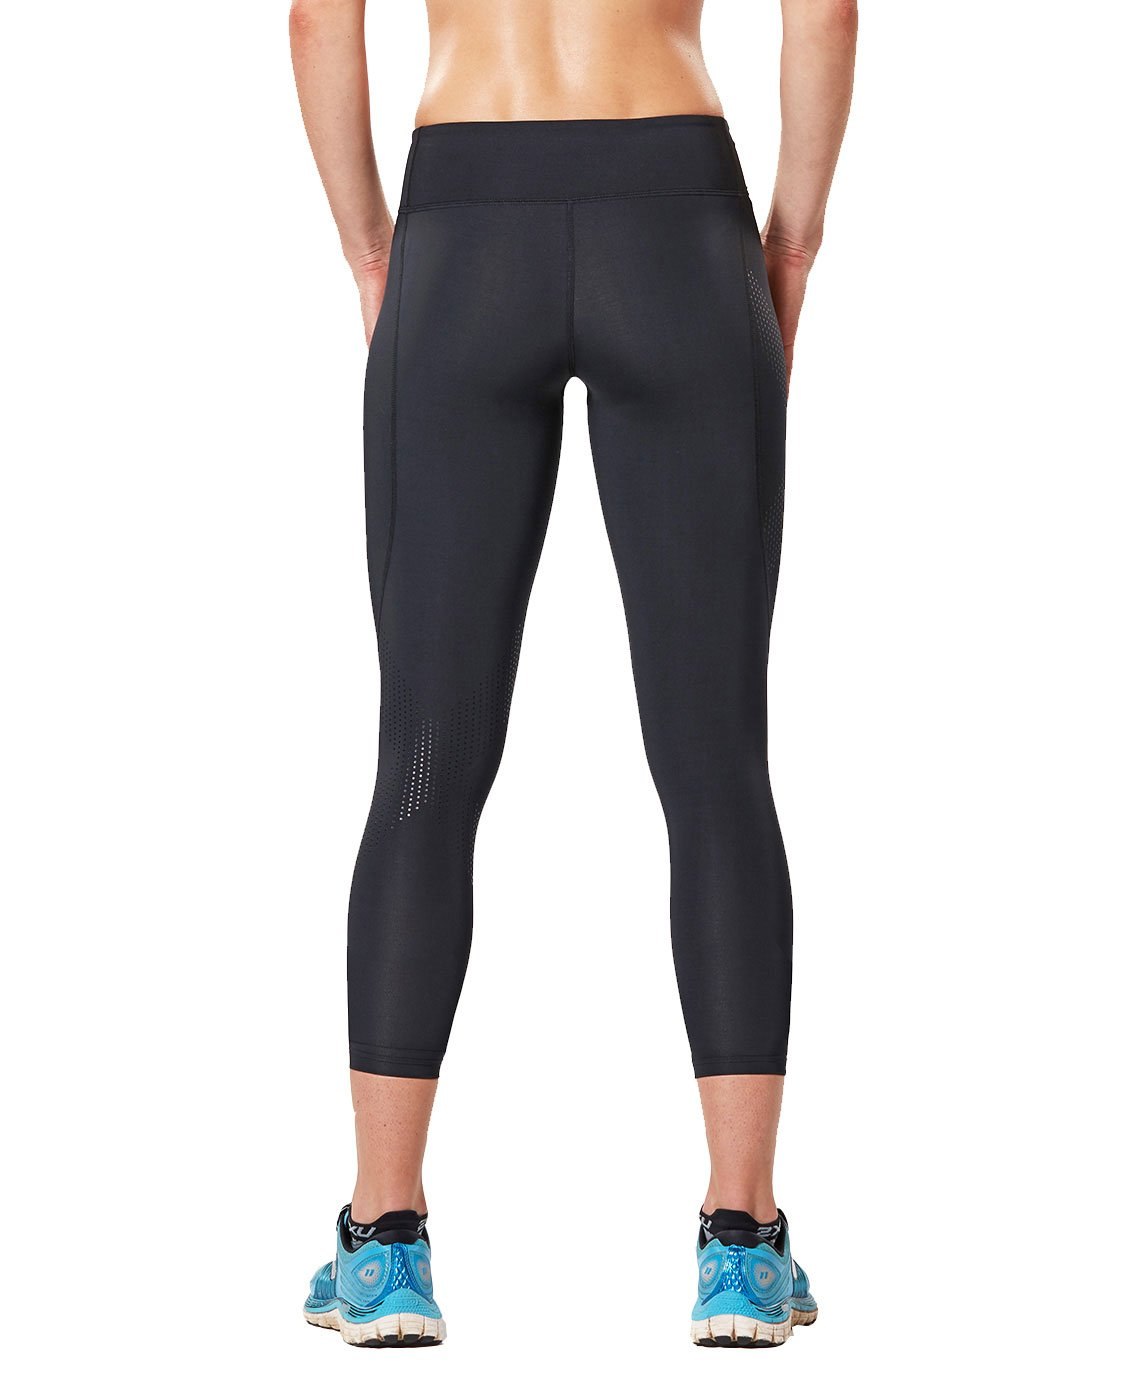 2XU Women's Mid-Rise 7/8 Compression Tights, Black/Dotted Black Logo, X-Small by 2XU (Image #3)